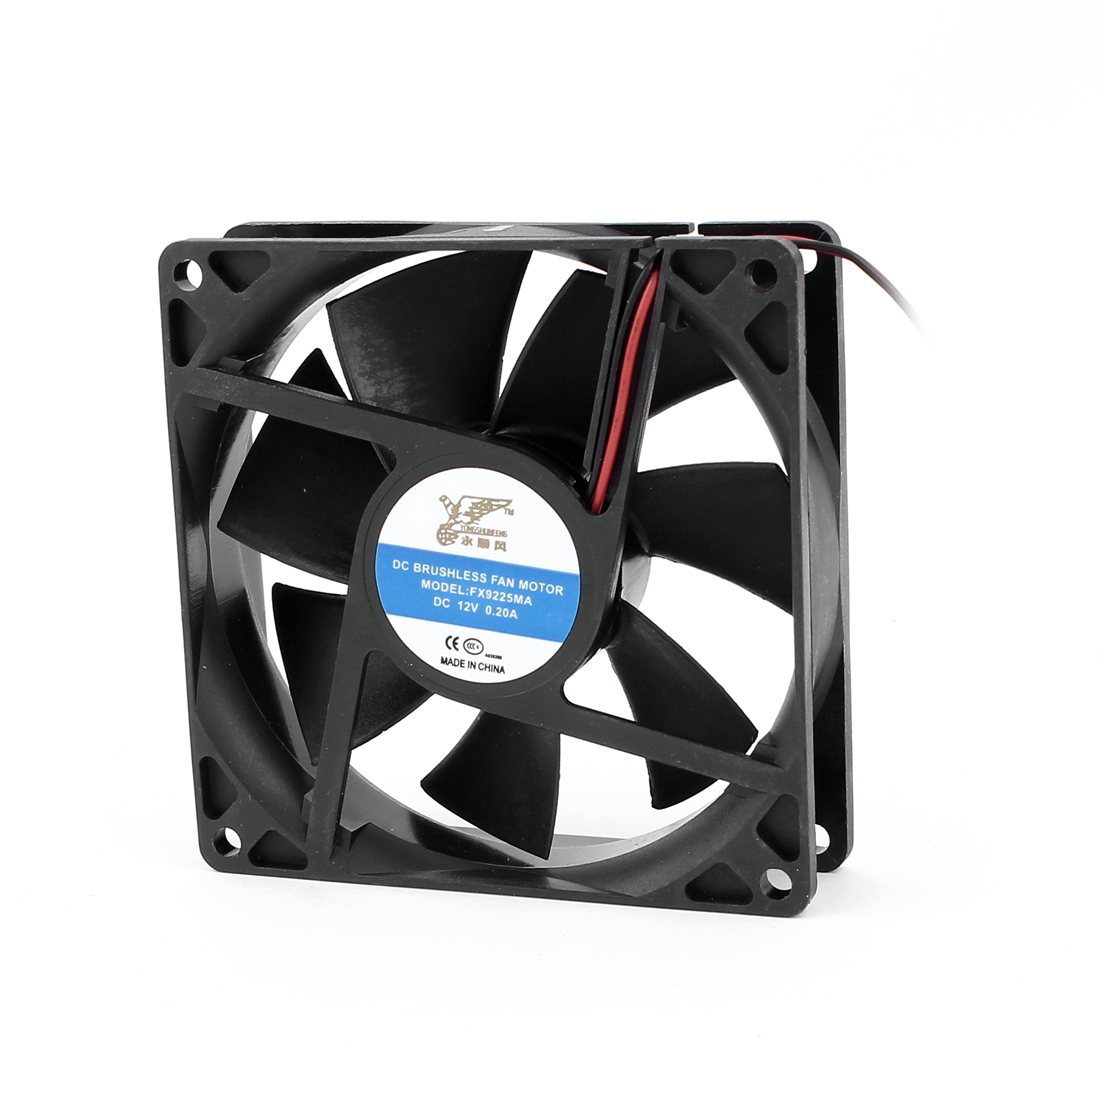 DC 12V 0.20A Black Plastic 2 Terminal Connector PC CPU Computer Cooling Cooler Square Fan 92mmx92mmx25mm